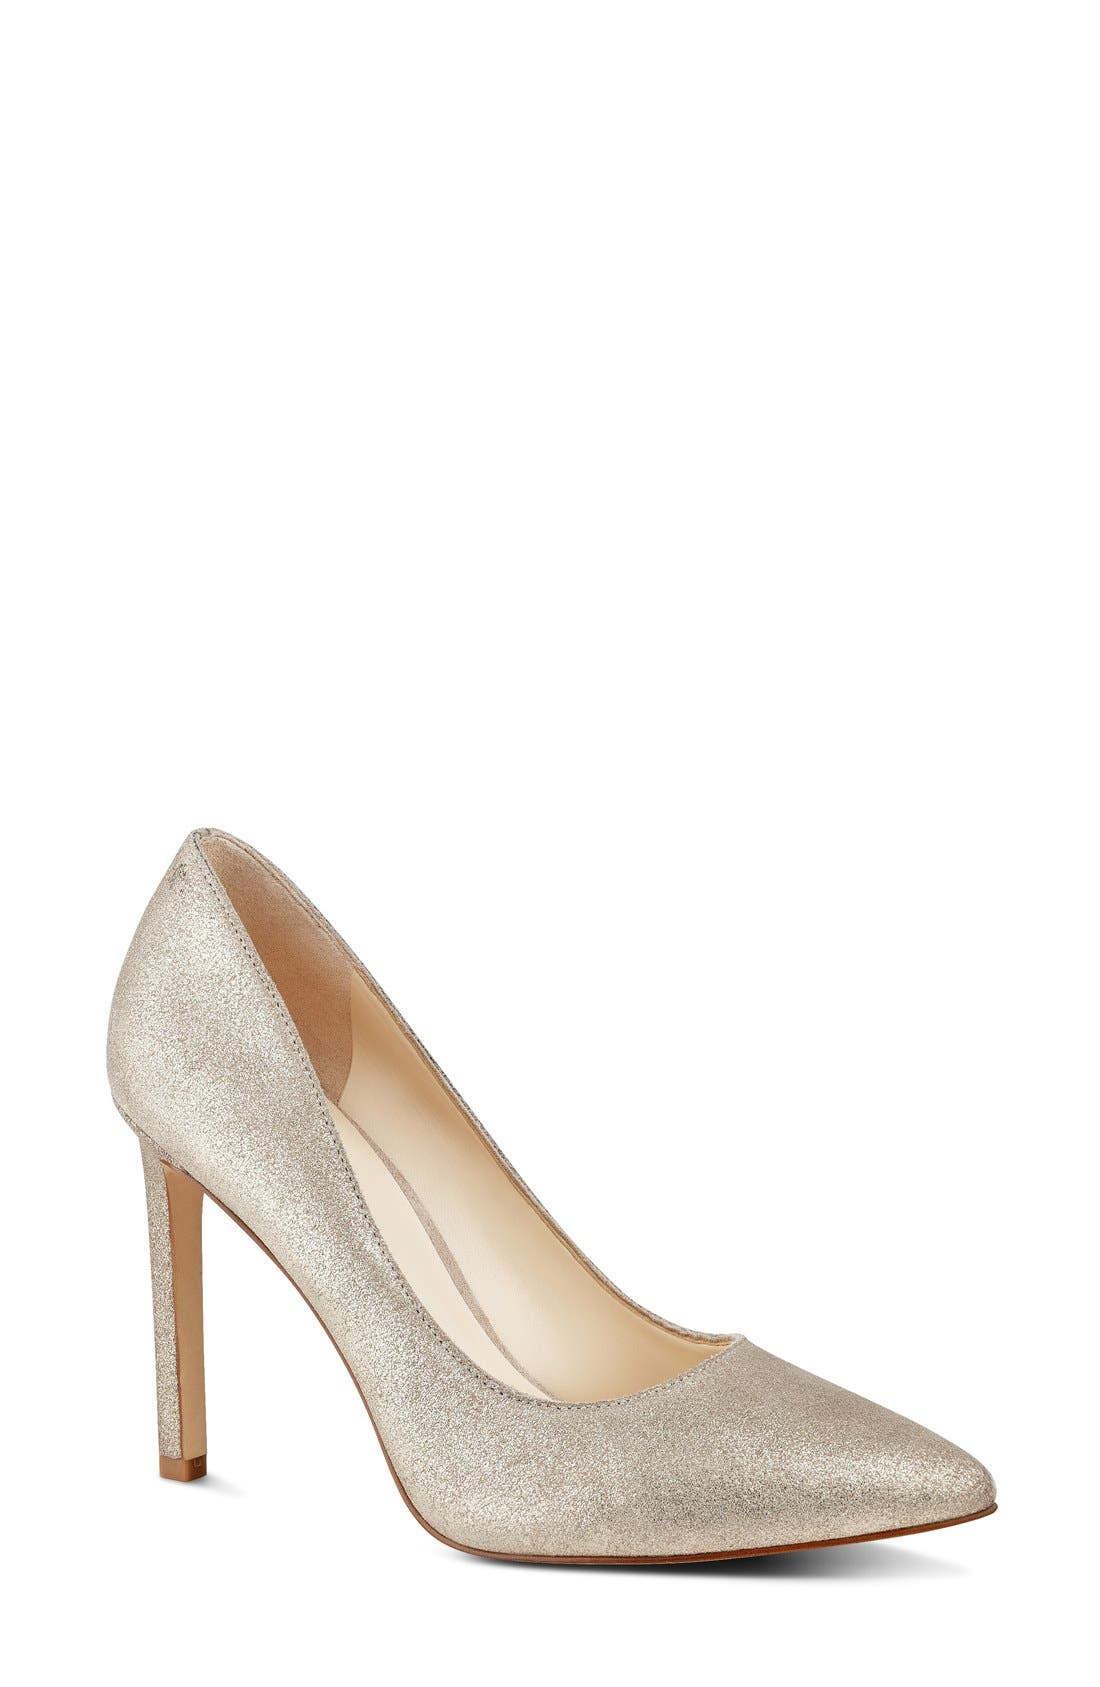 'Tatiana' Pump,                         Main,                         color, Natural/ Gold Metallic Suede